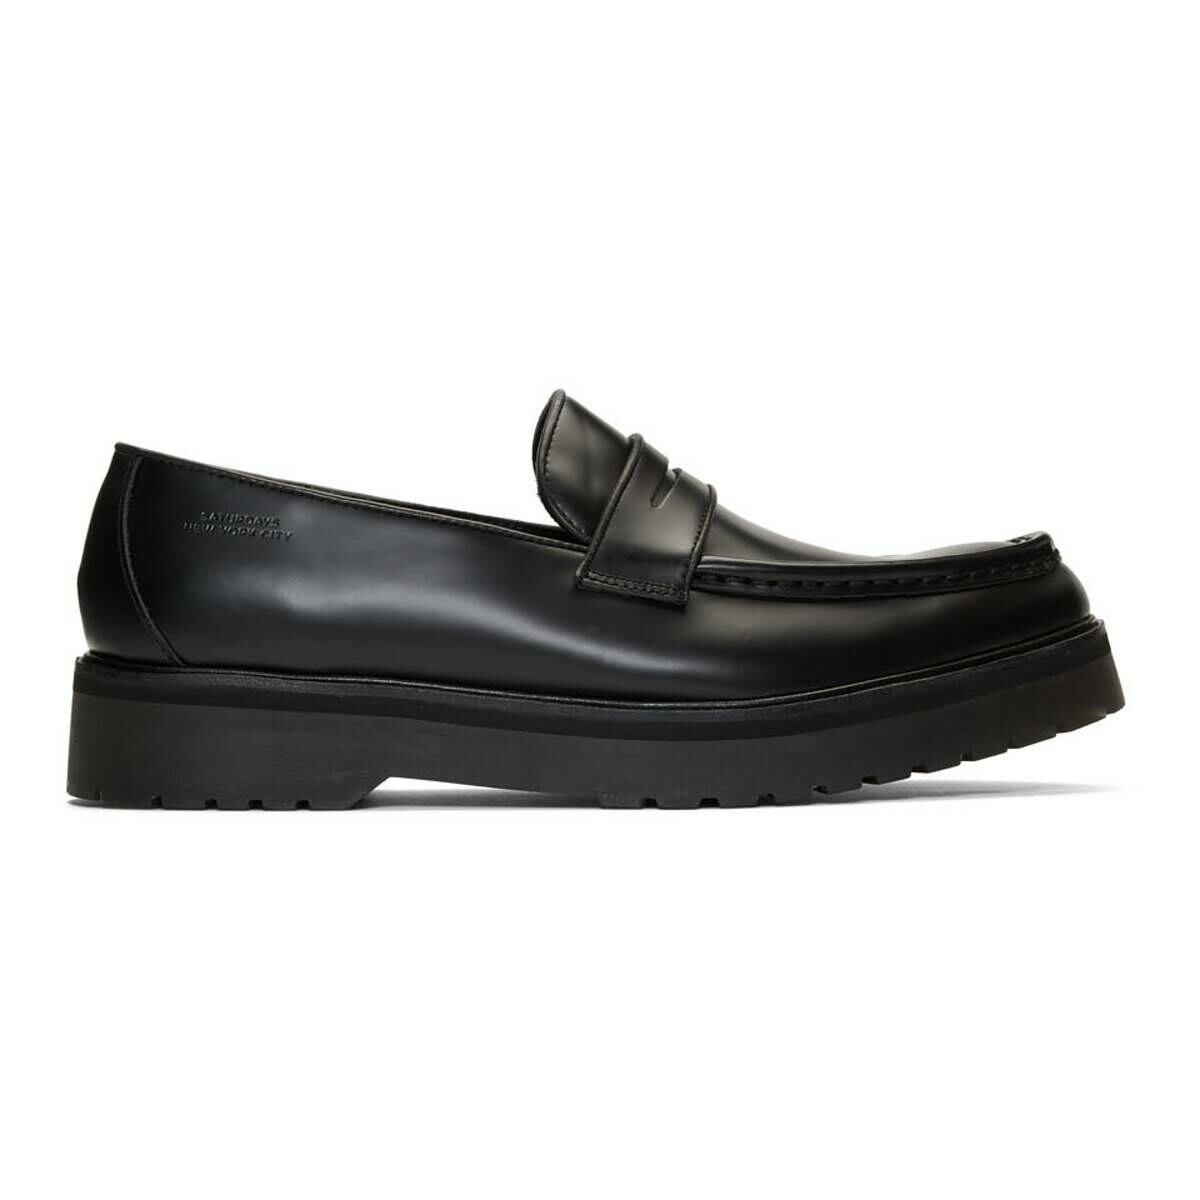 Saturdays NYC Black Idris Loafers Ssense USA MEN Men SHOES Mens LOAFERS